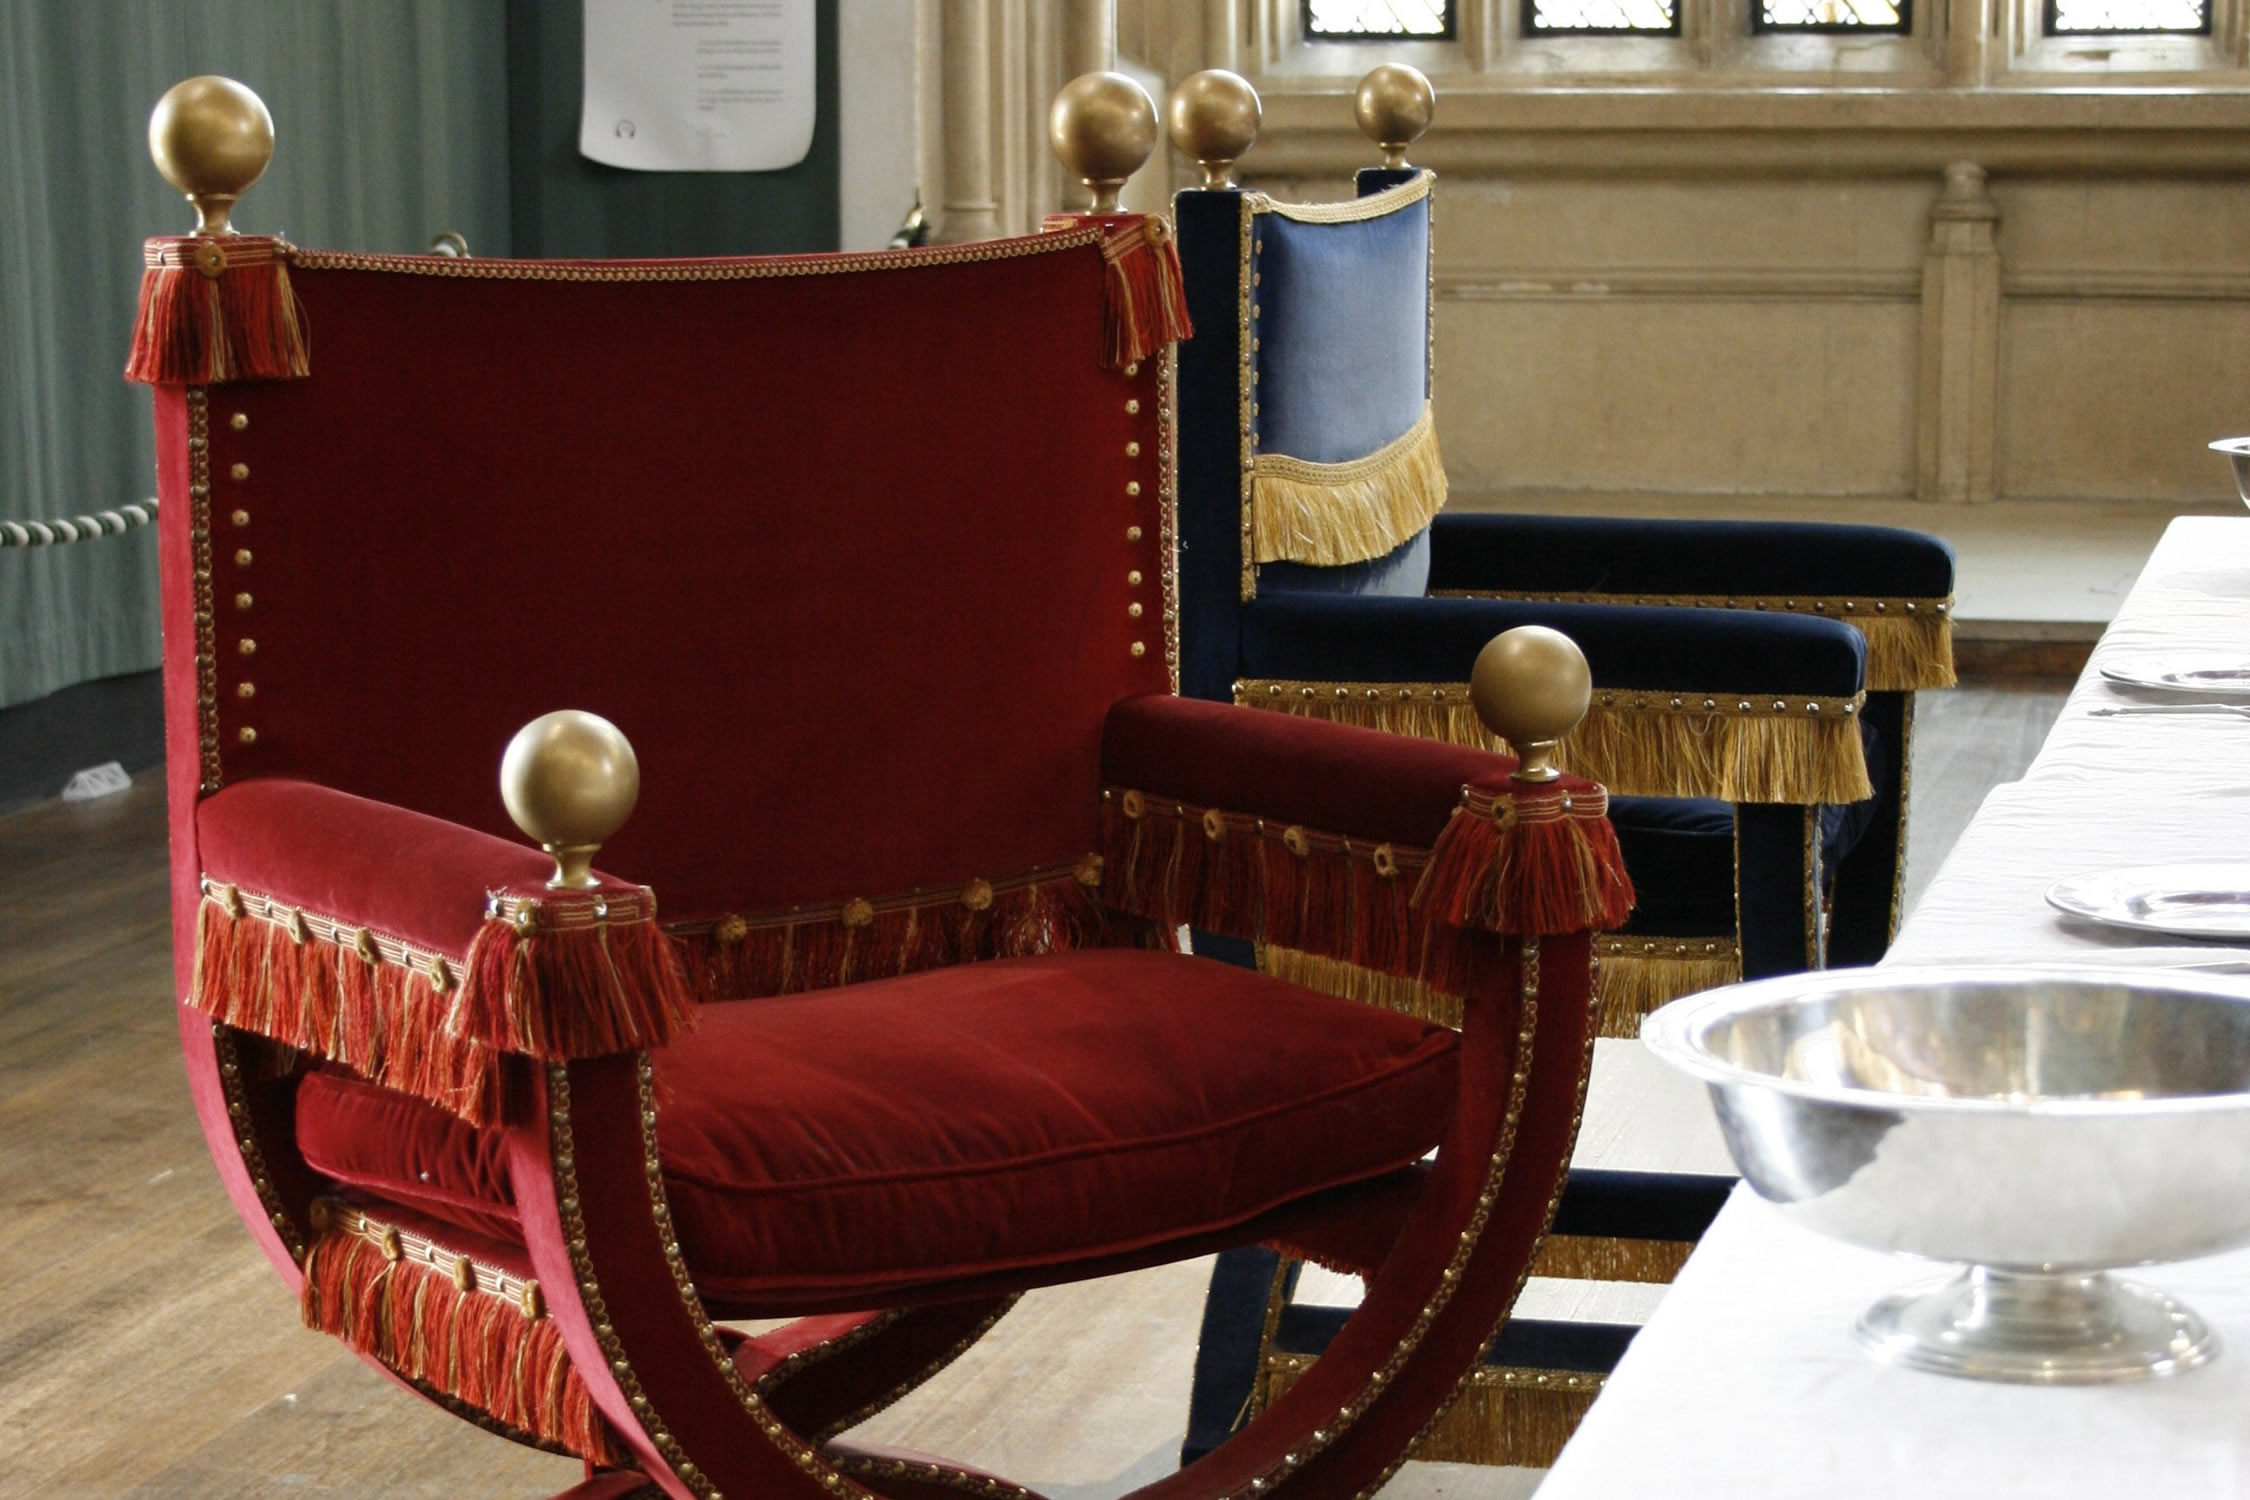 Tudor Furniture for the Great Hall of Hampton Court Palace